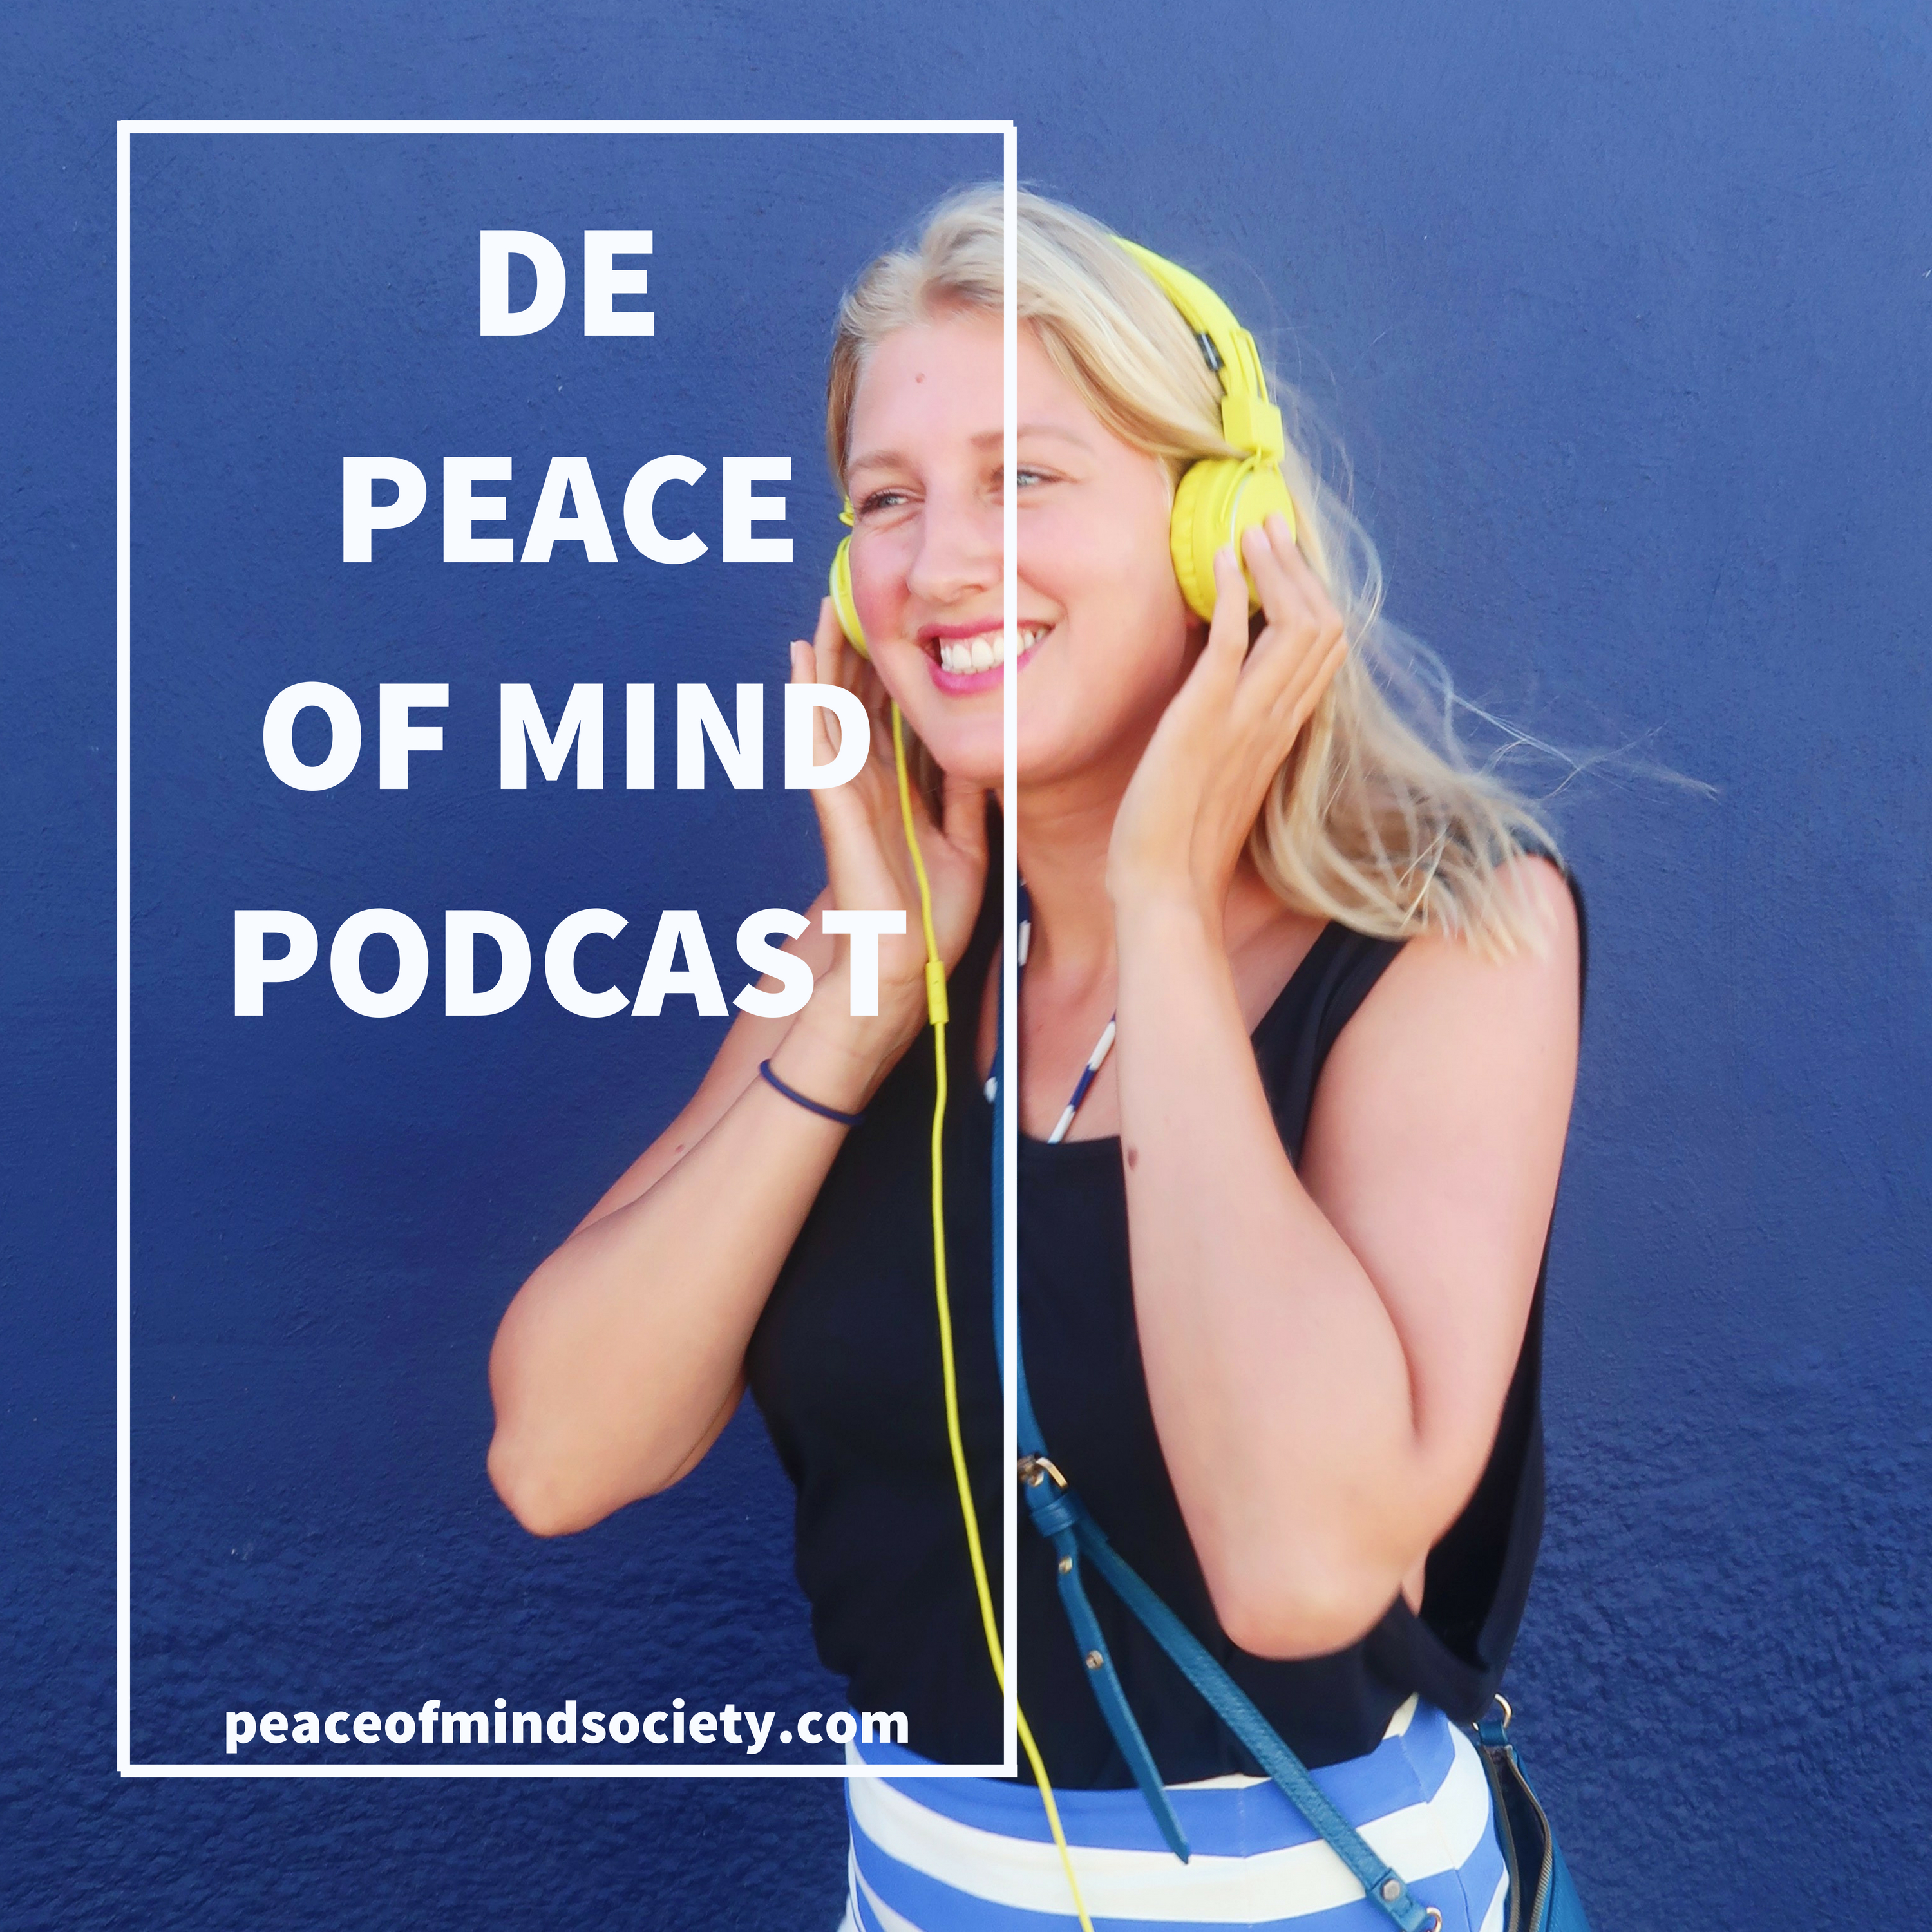 Peace of Mind Podcast logo